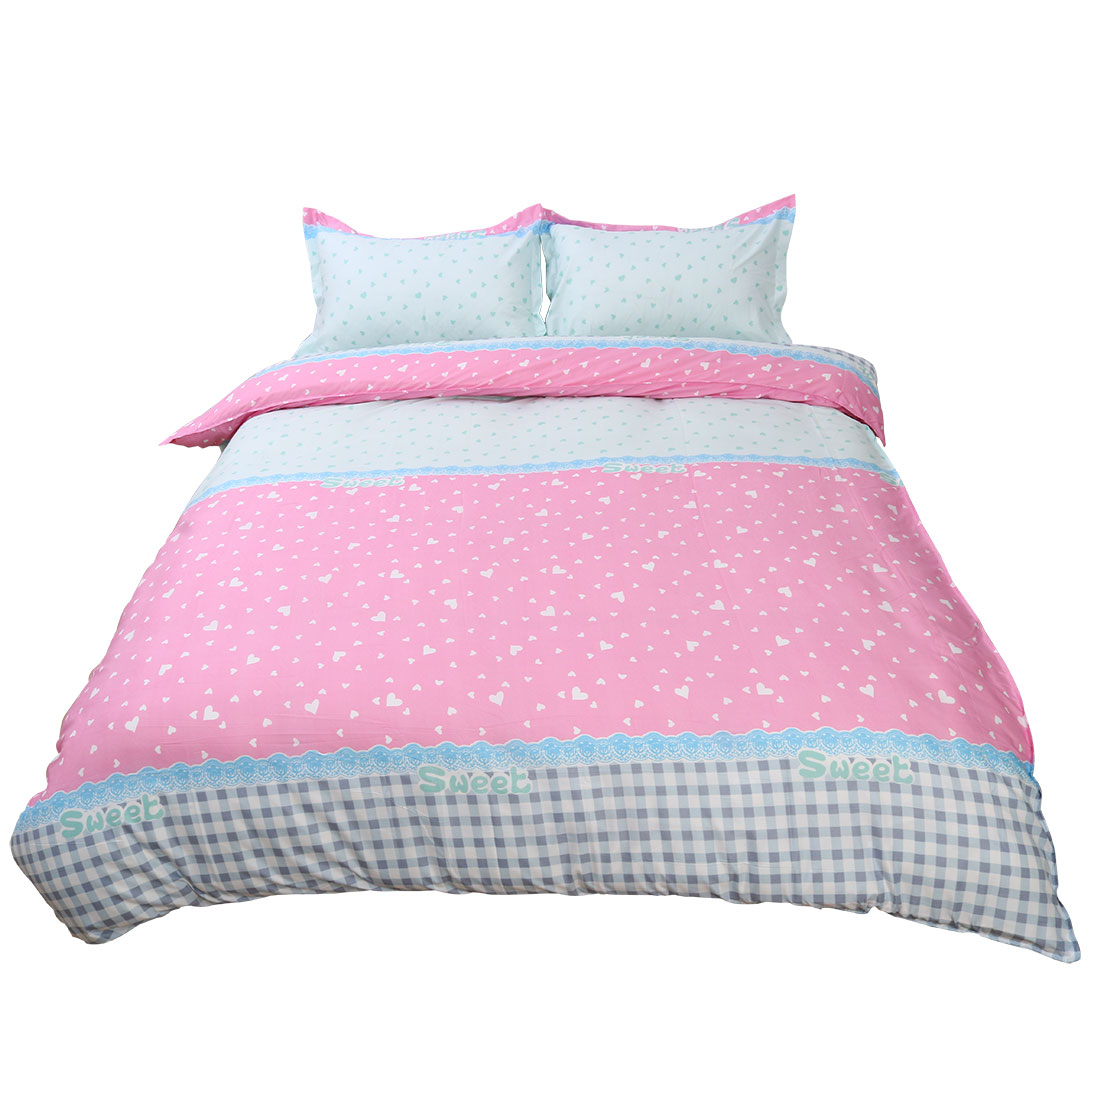 Hearts Pattern Duvet Cover Pillowcase Quilt Cover Bedding Set Super King Size Pink